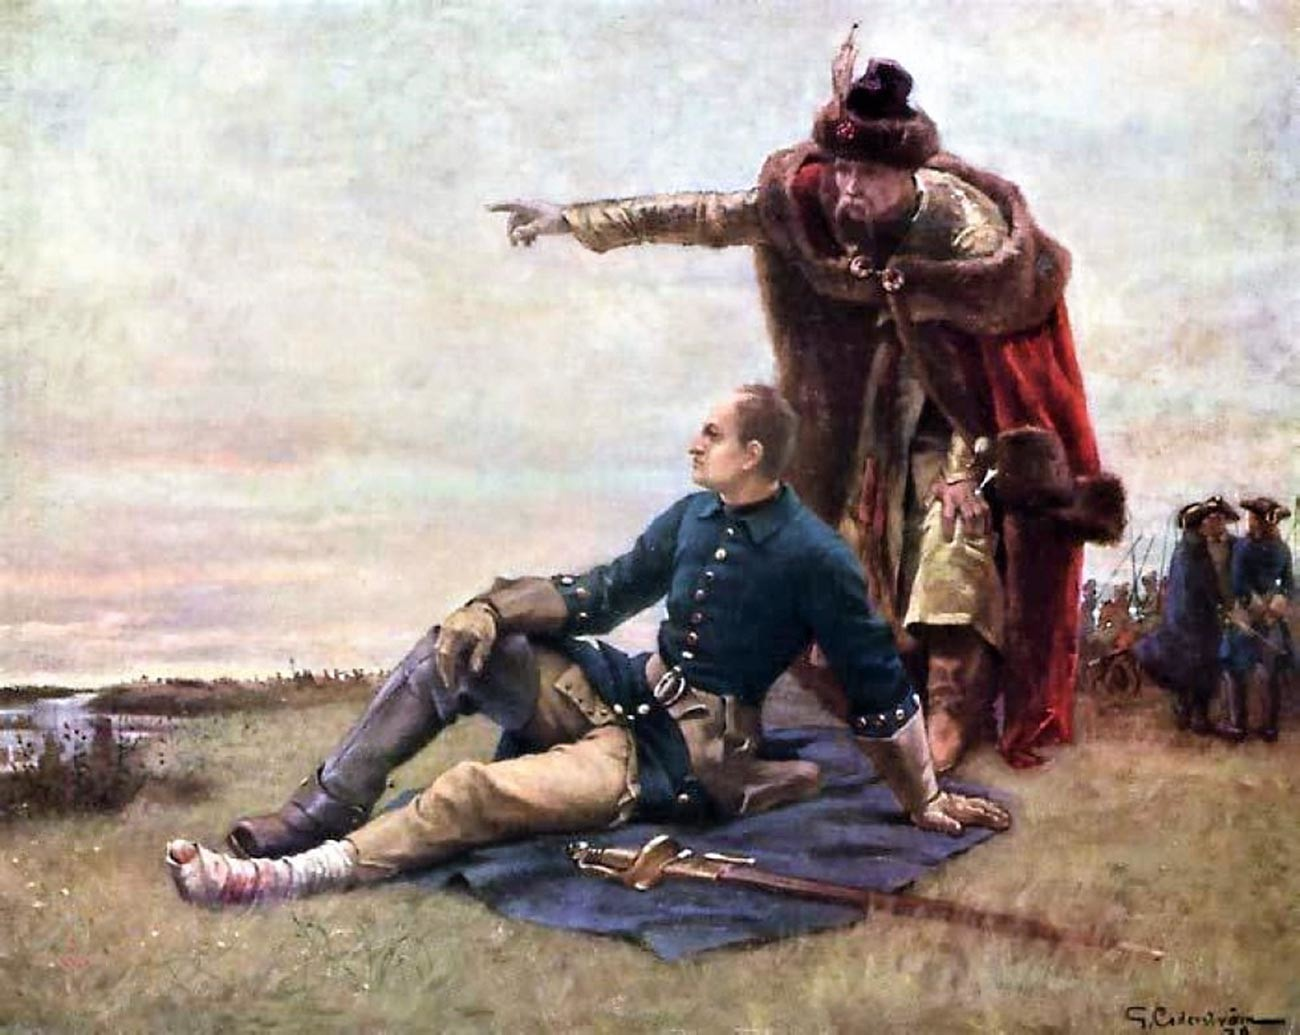 Charles XII and Ivan Mazepa after the Poltava Battle.